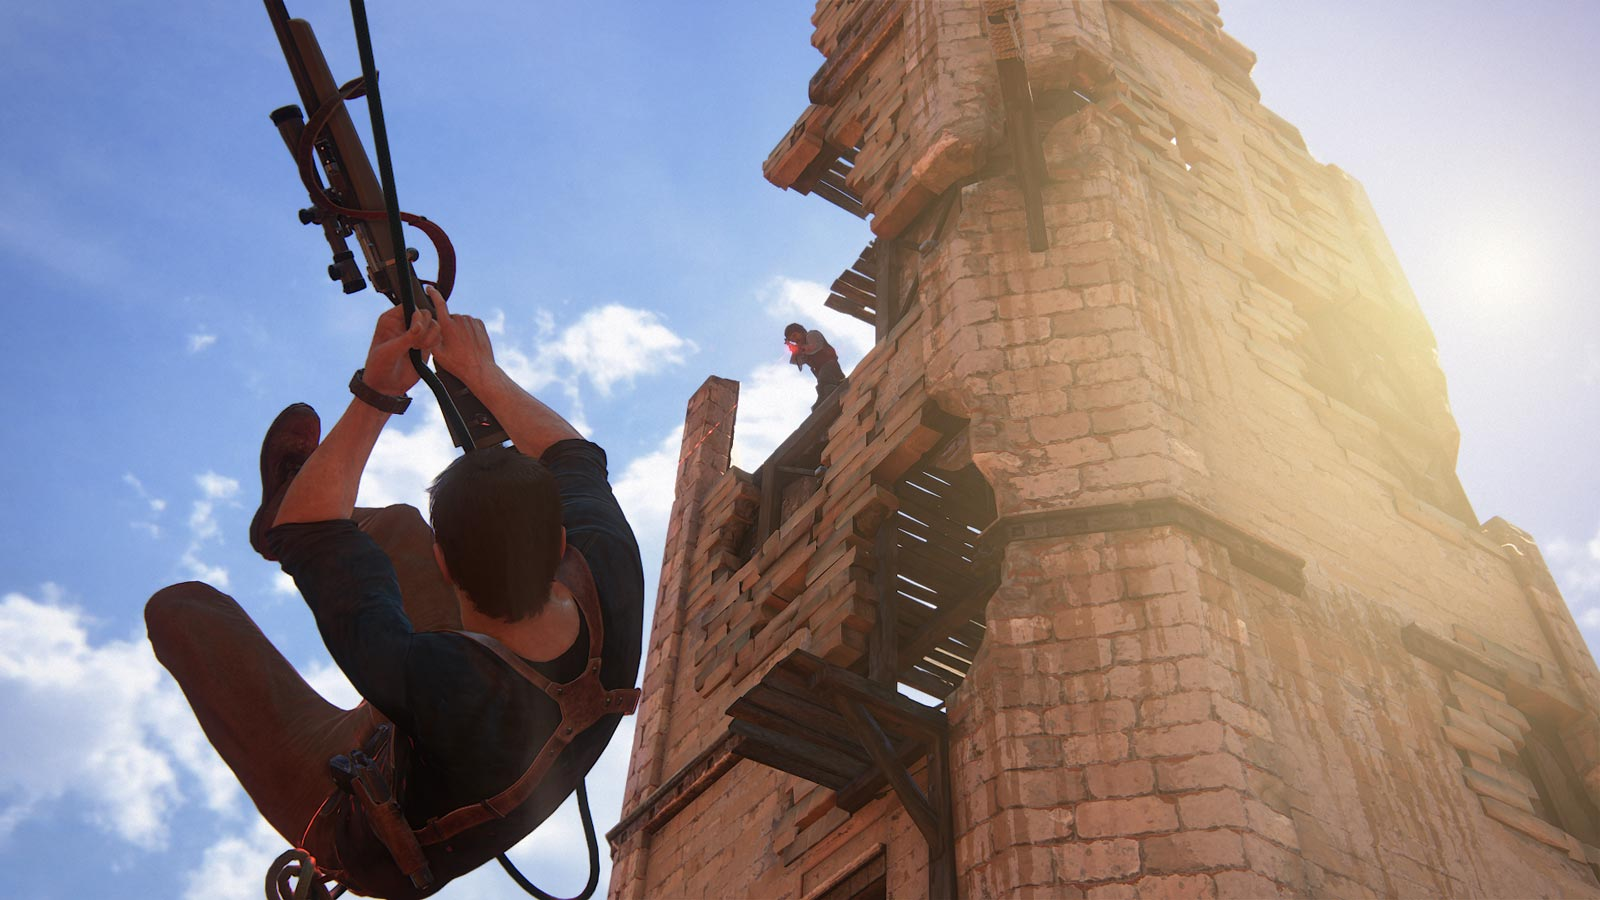 Uncharted 4 : A Thief's End, un jeu d'action / aventure de type TPS.